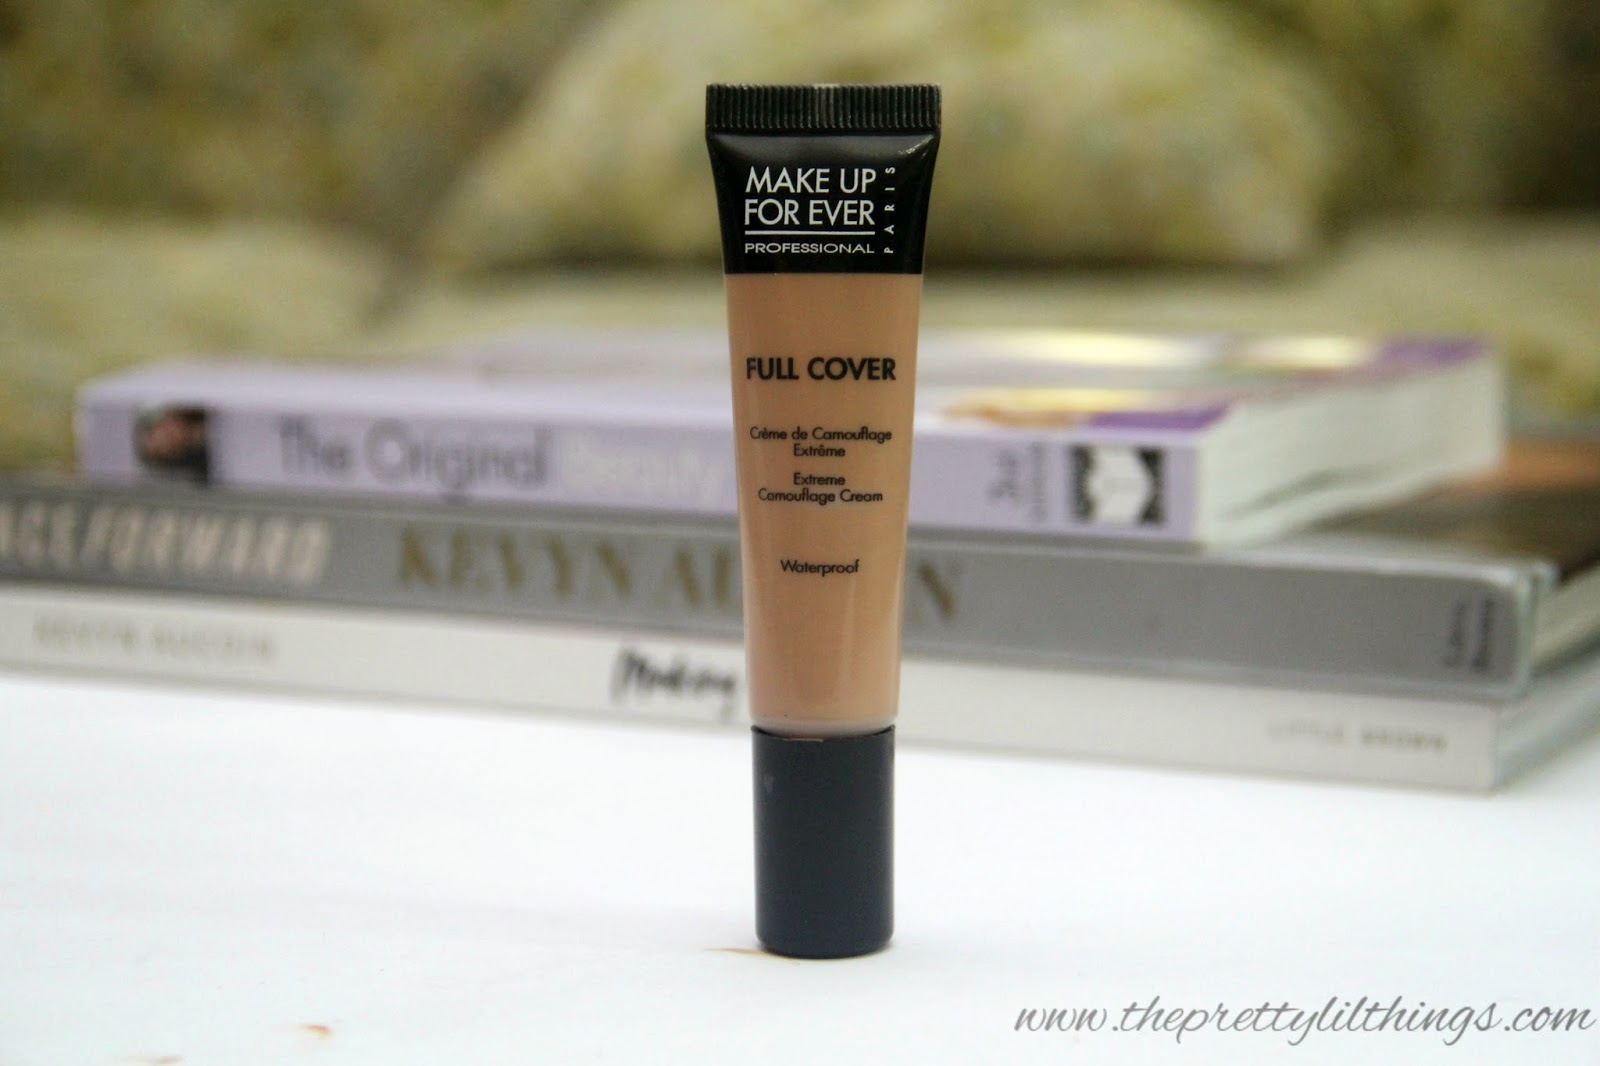 The Pretty Lil Things Blog: REVIEW: Make Up For Ever Full Cover Extreme Camouflage Cream